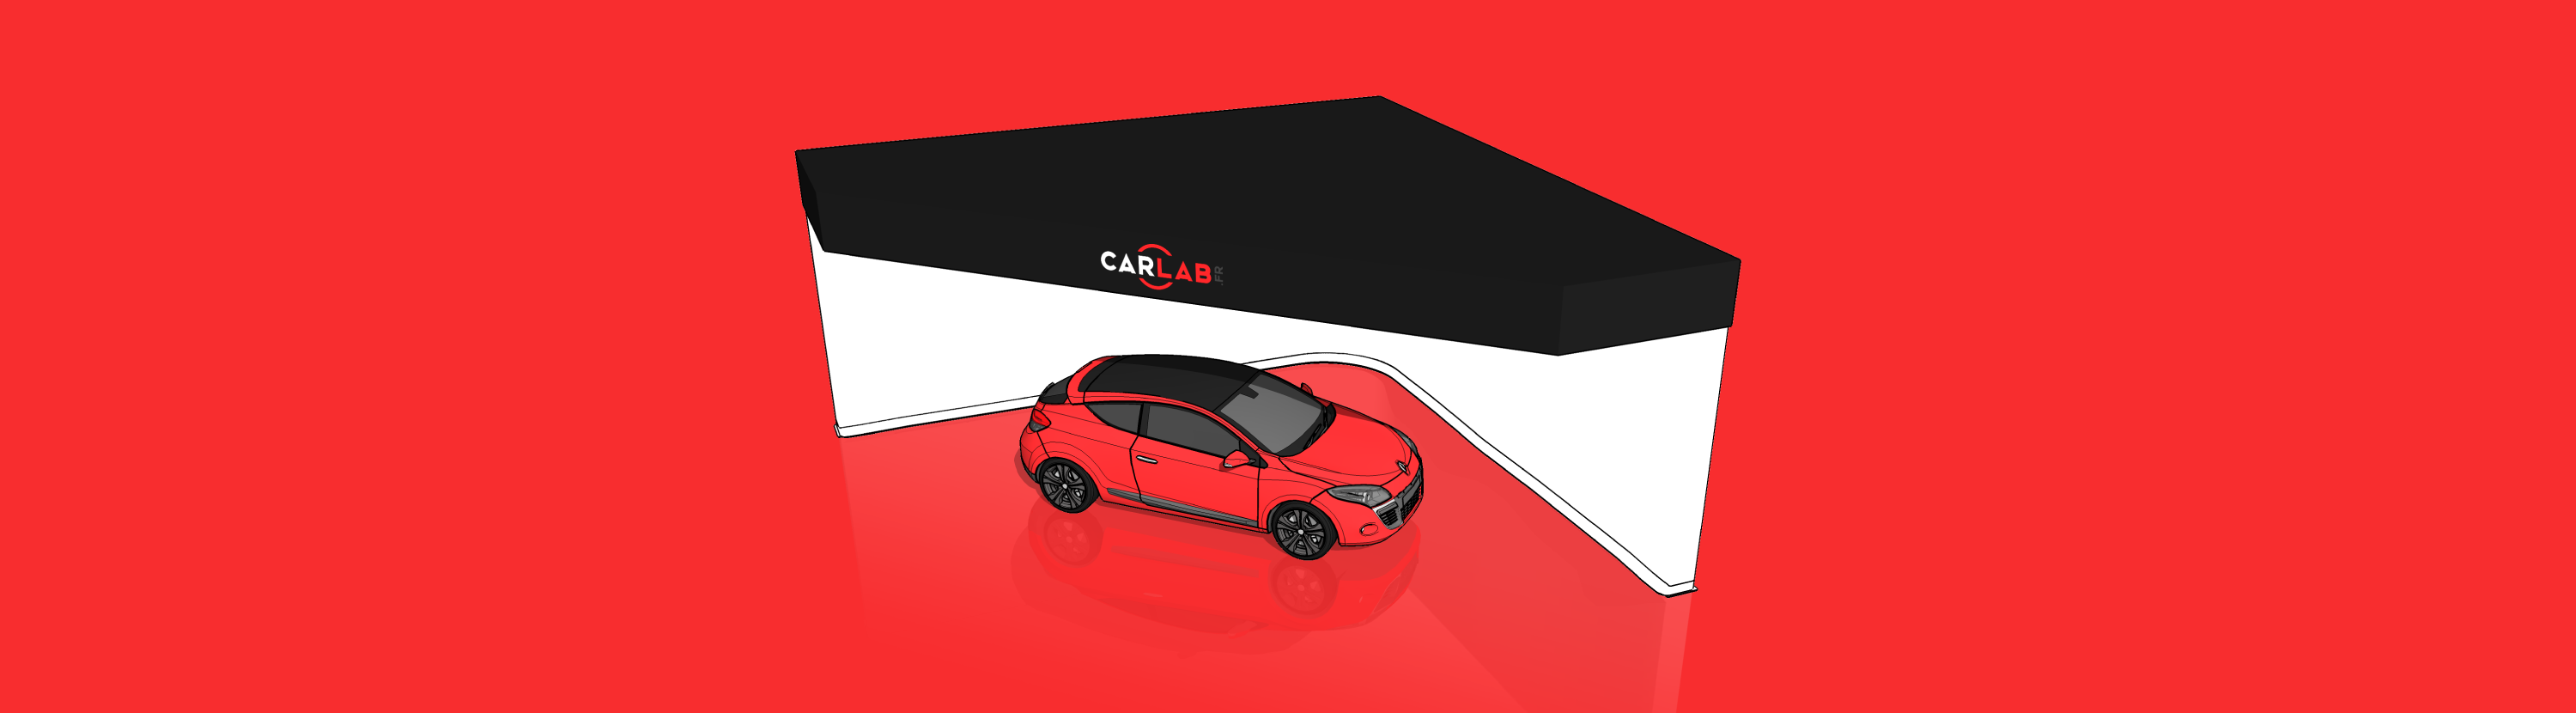 image banner carlab corner photo studio for cars